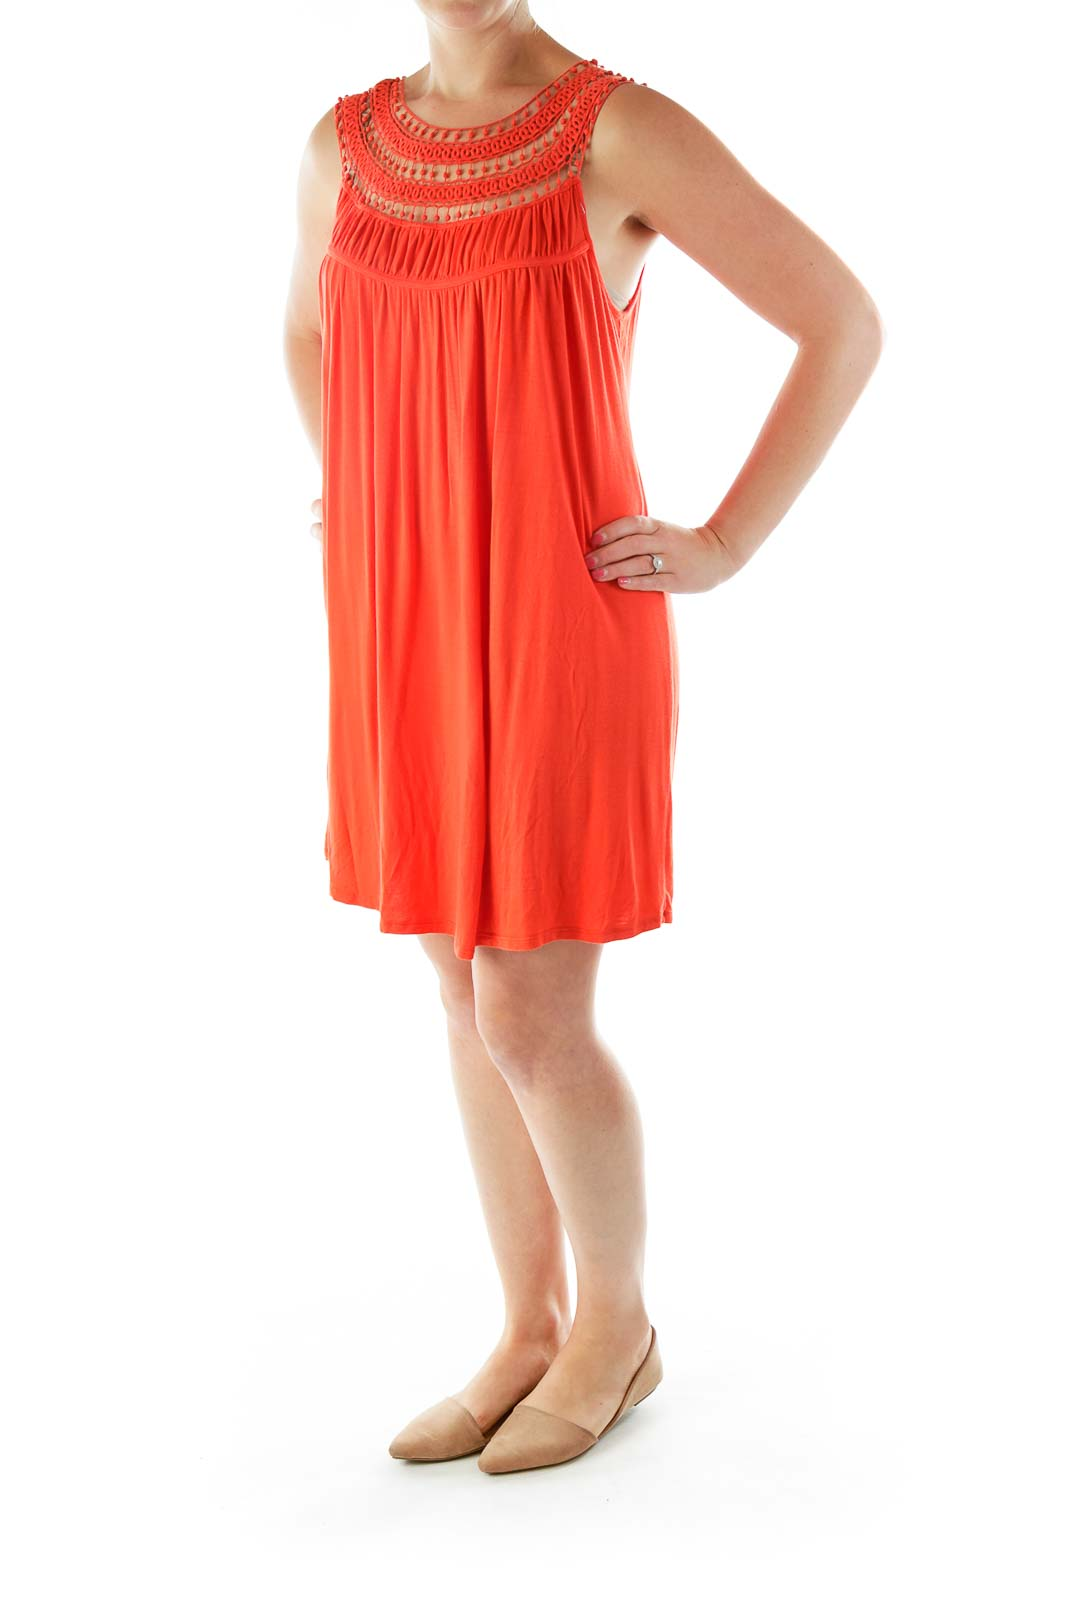 Orange Crocheted Day Dress